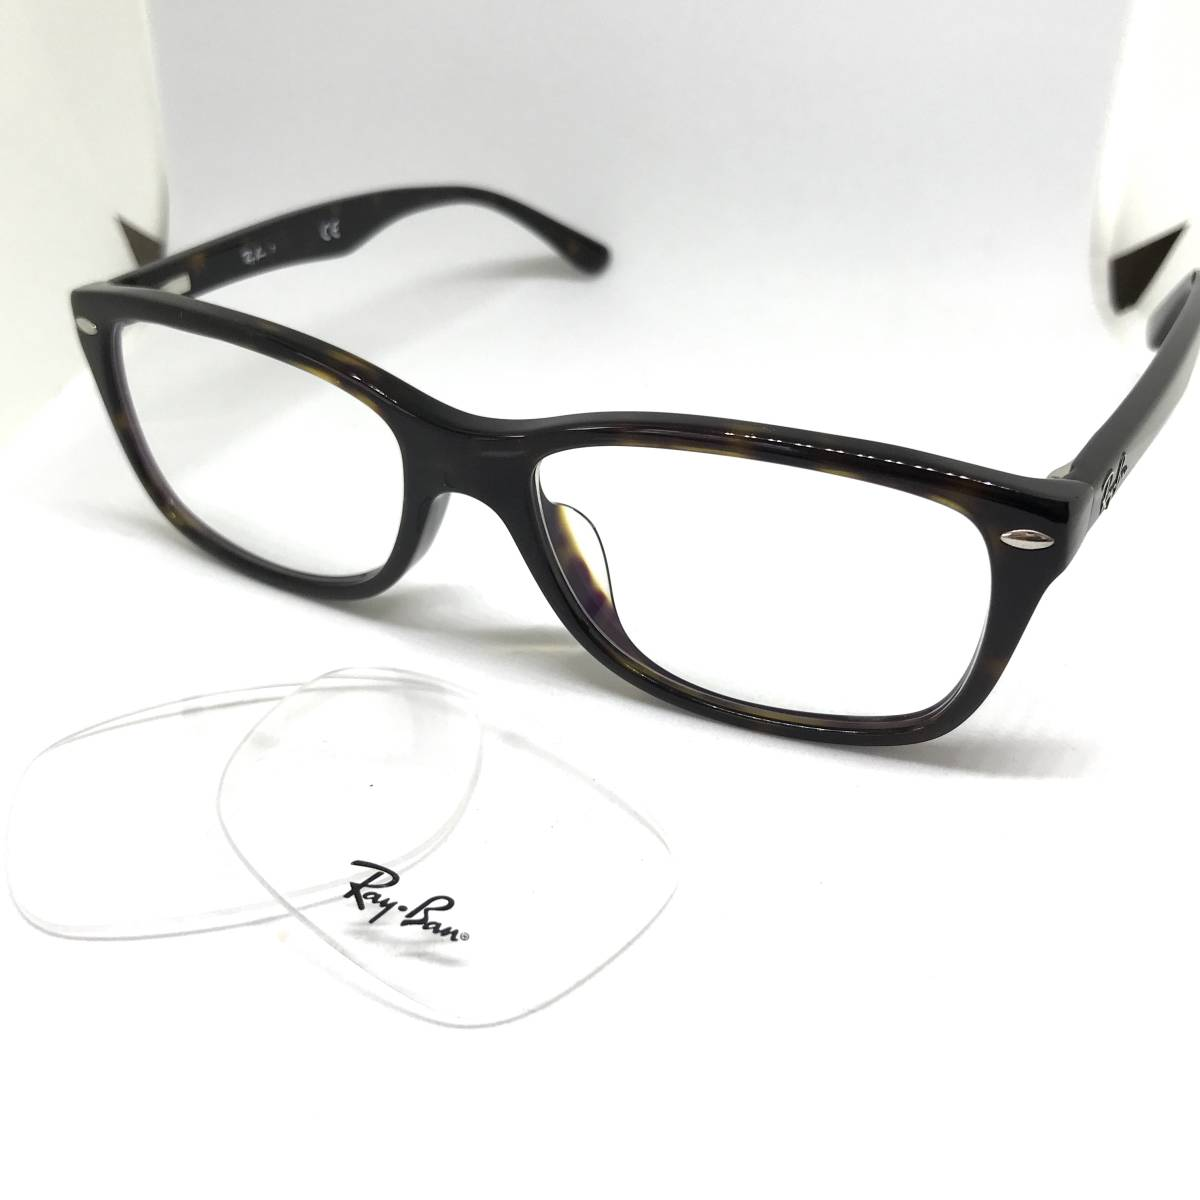 44dbe834193 Rayban glasses size personal computer for glasses blue light cut lens jpg  1200x1200 Ray ban computer